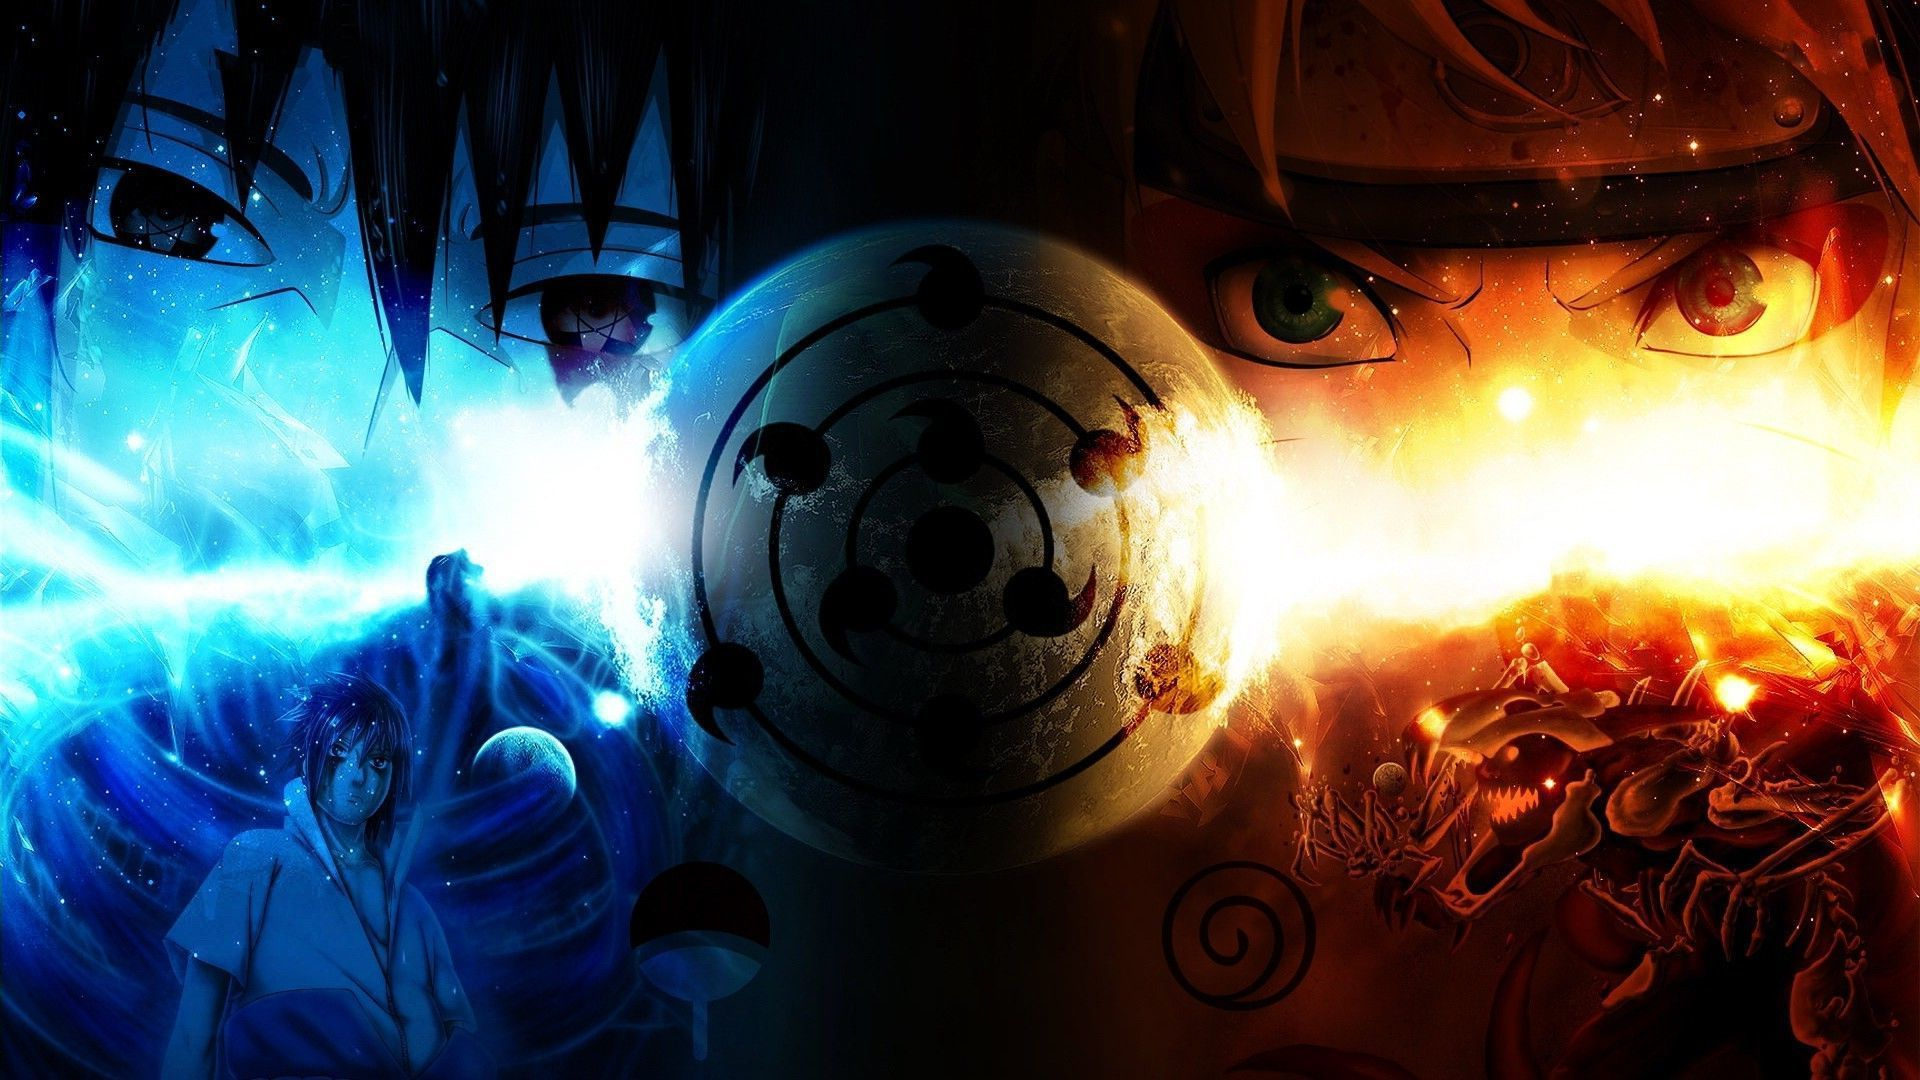 Naruto Fire And Ice Hd Anime Wallpaper Desktop Wallpapers K High Papel De Parede Naruto Tela Pc Naruto